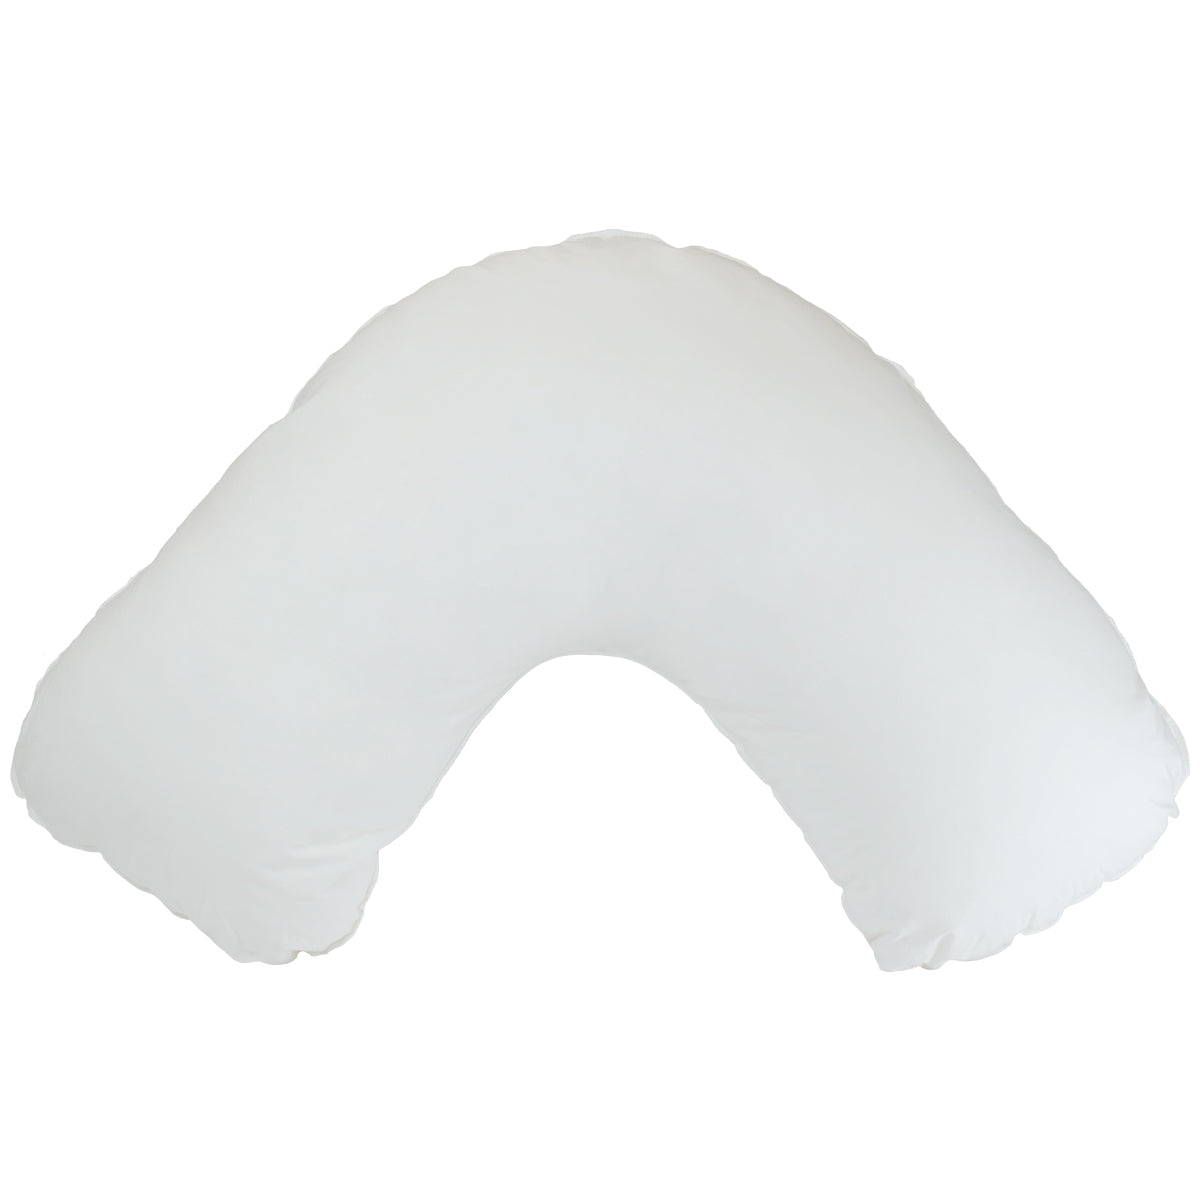 Boomerang Pillow Replacement Cotton Cover